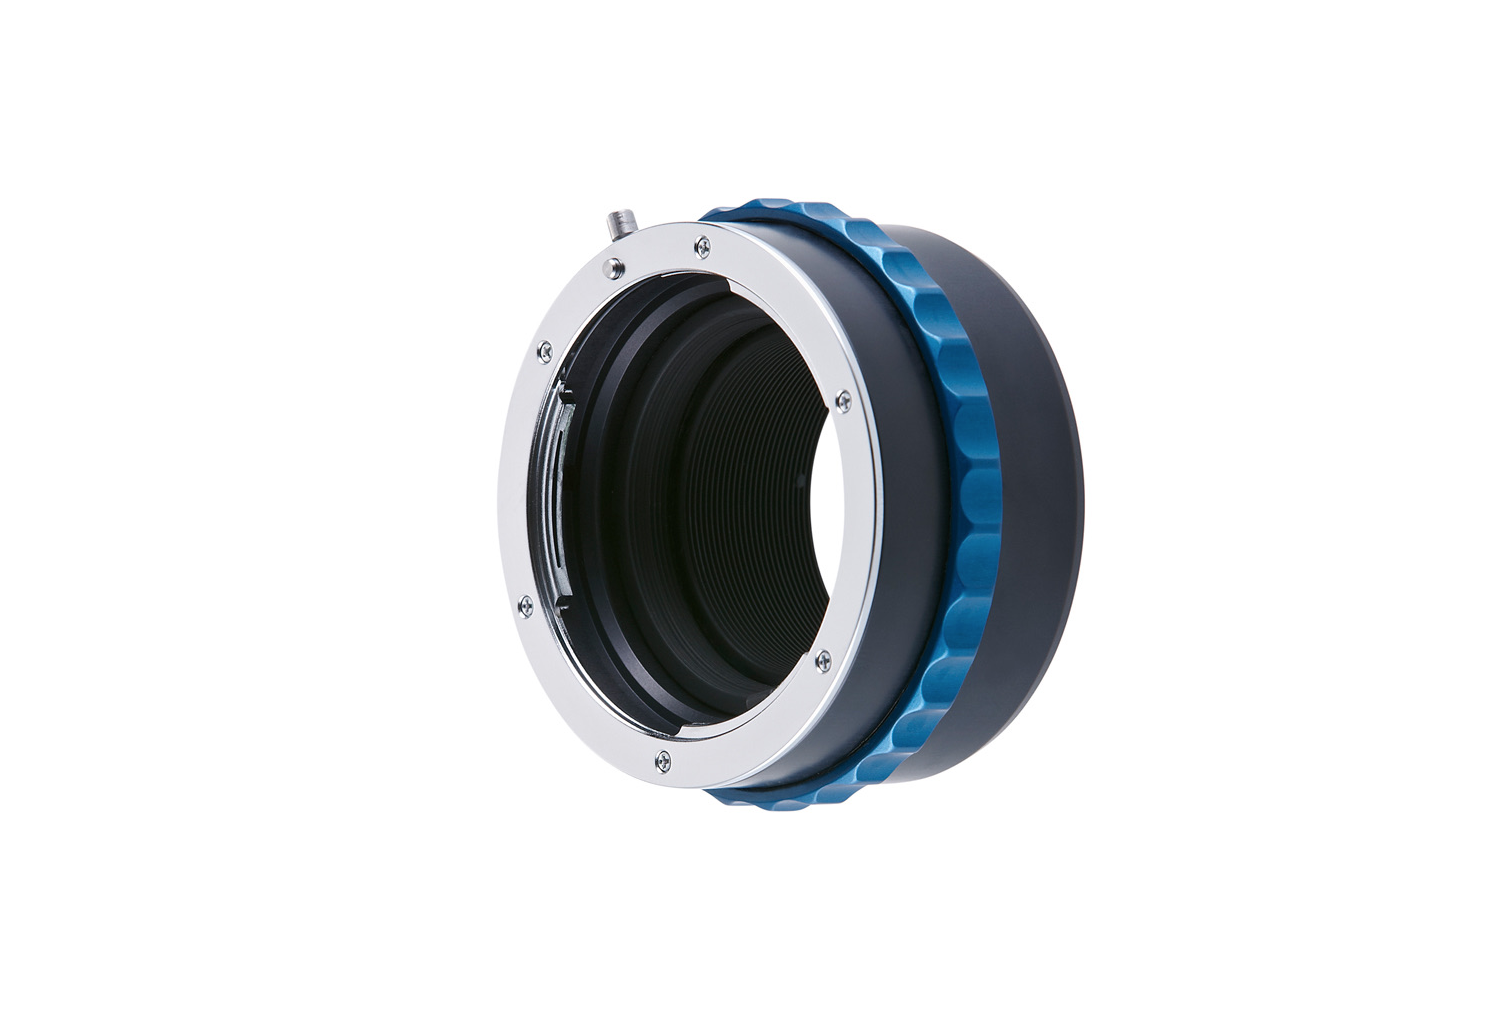 Novoflex lens adapters for the Canon EOS R and Nikon Z - Newsshooter